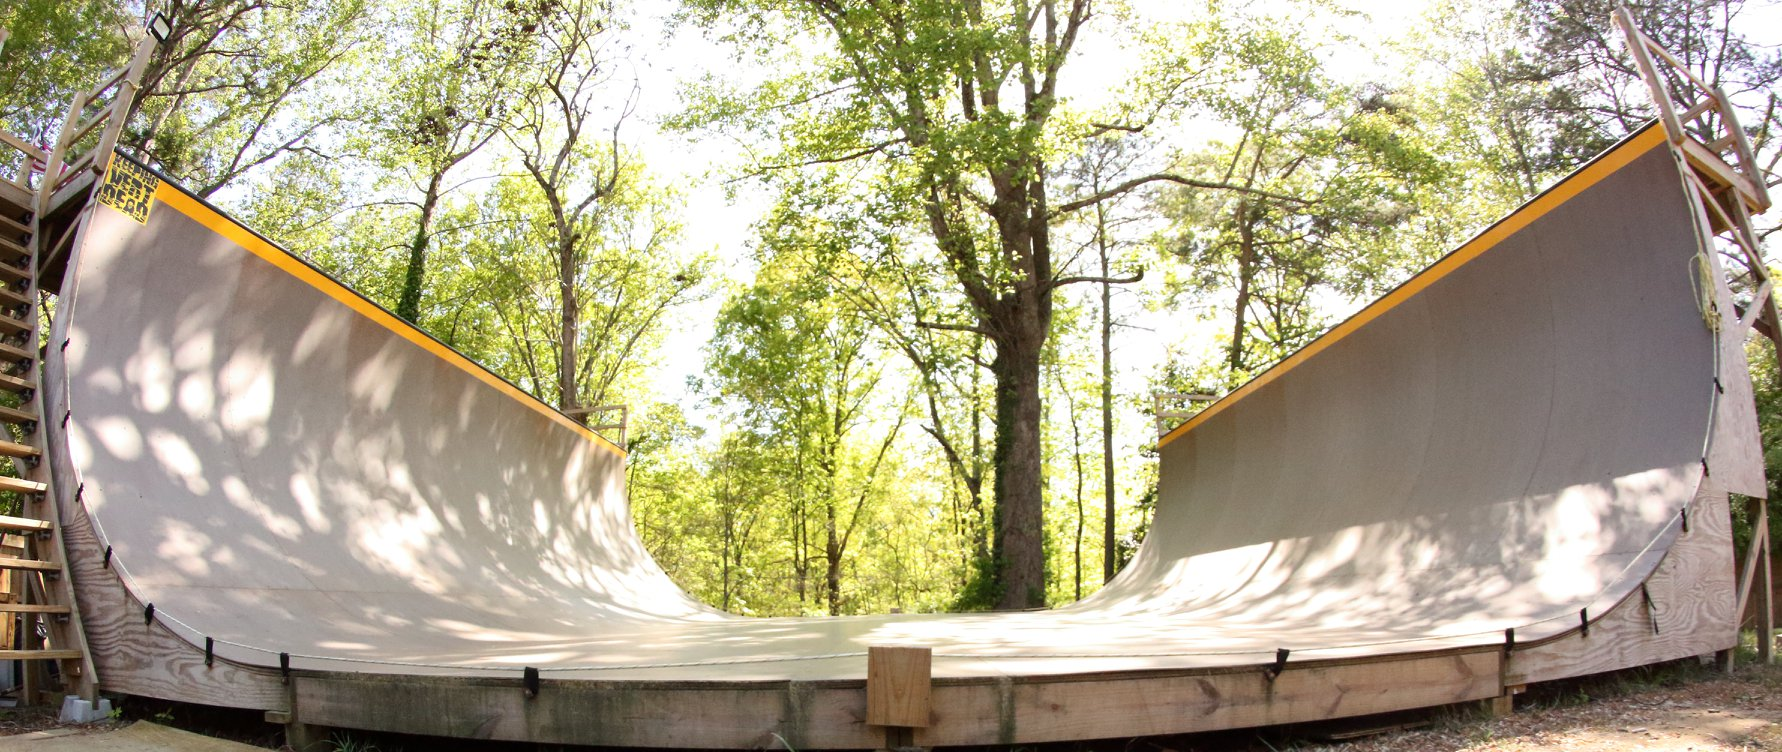 """Micheal Stewarts Ramp 36ft wide 11'-9"""" Tall 10' tranny's and old skool 16' flat 8' deck on one side 6' on the other."""